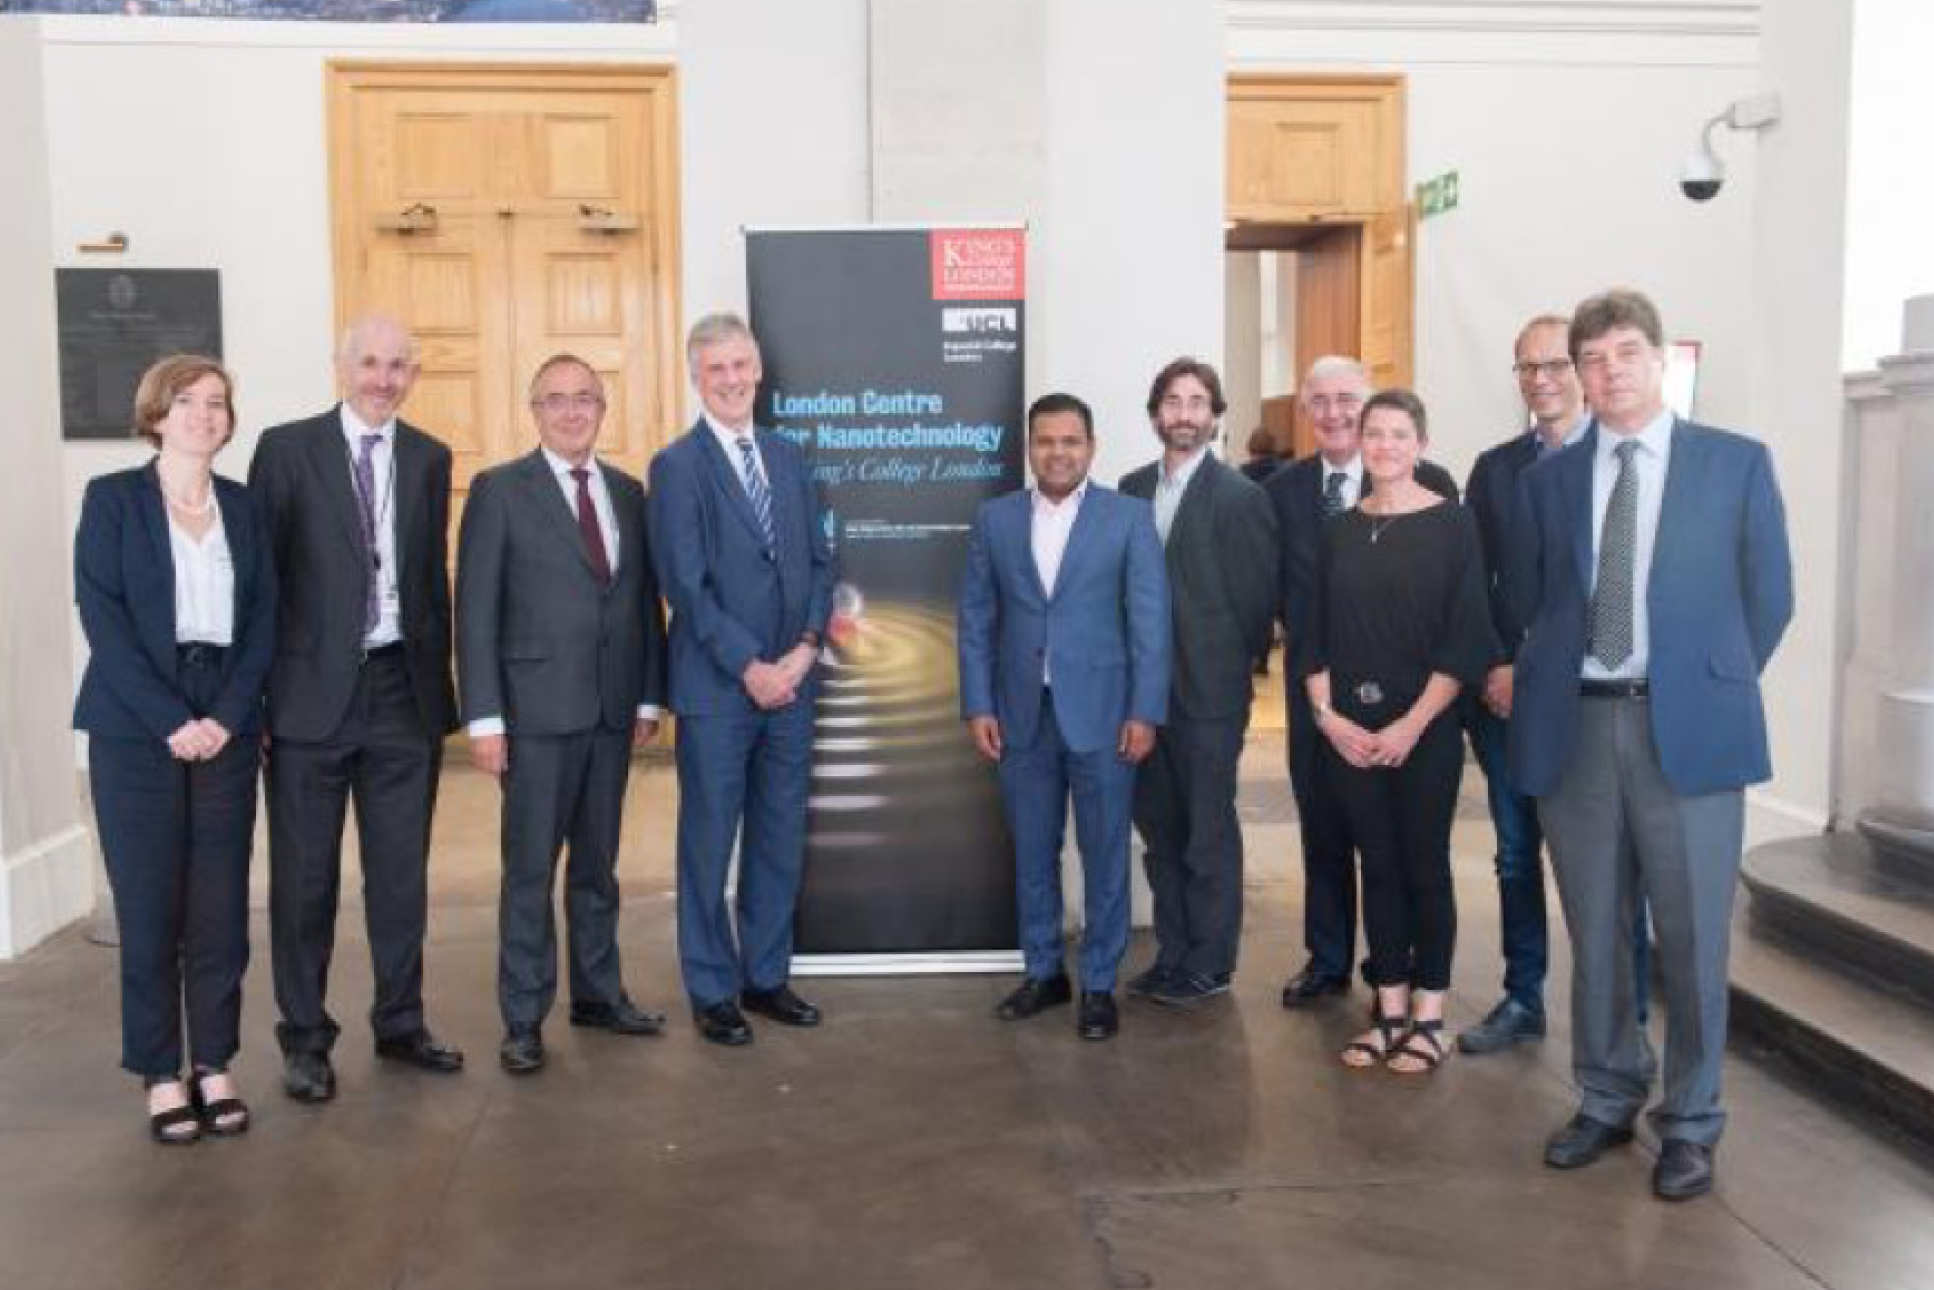 VIPs, directors and some speakers at the KCL accession launch event